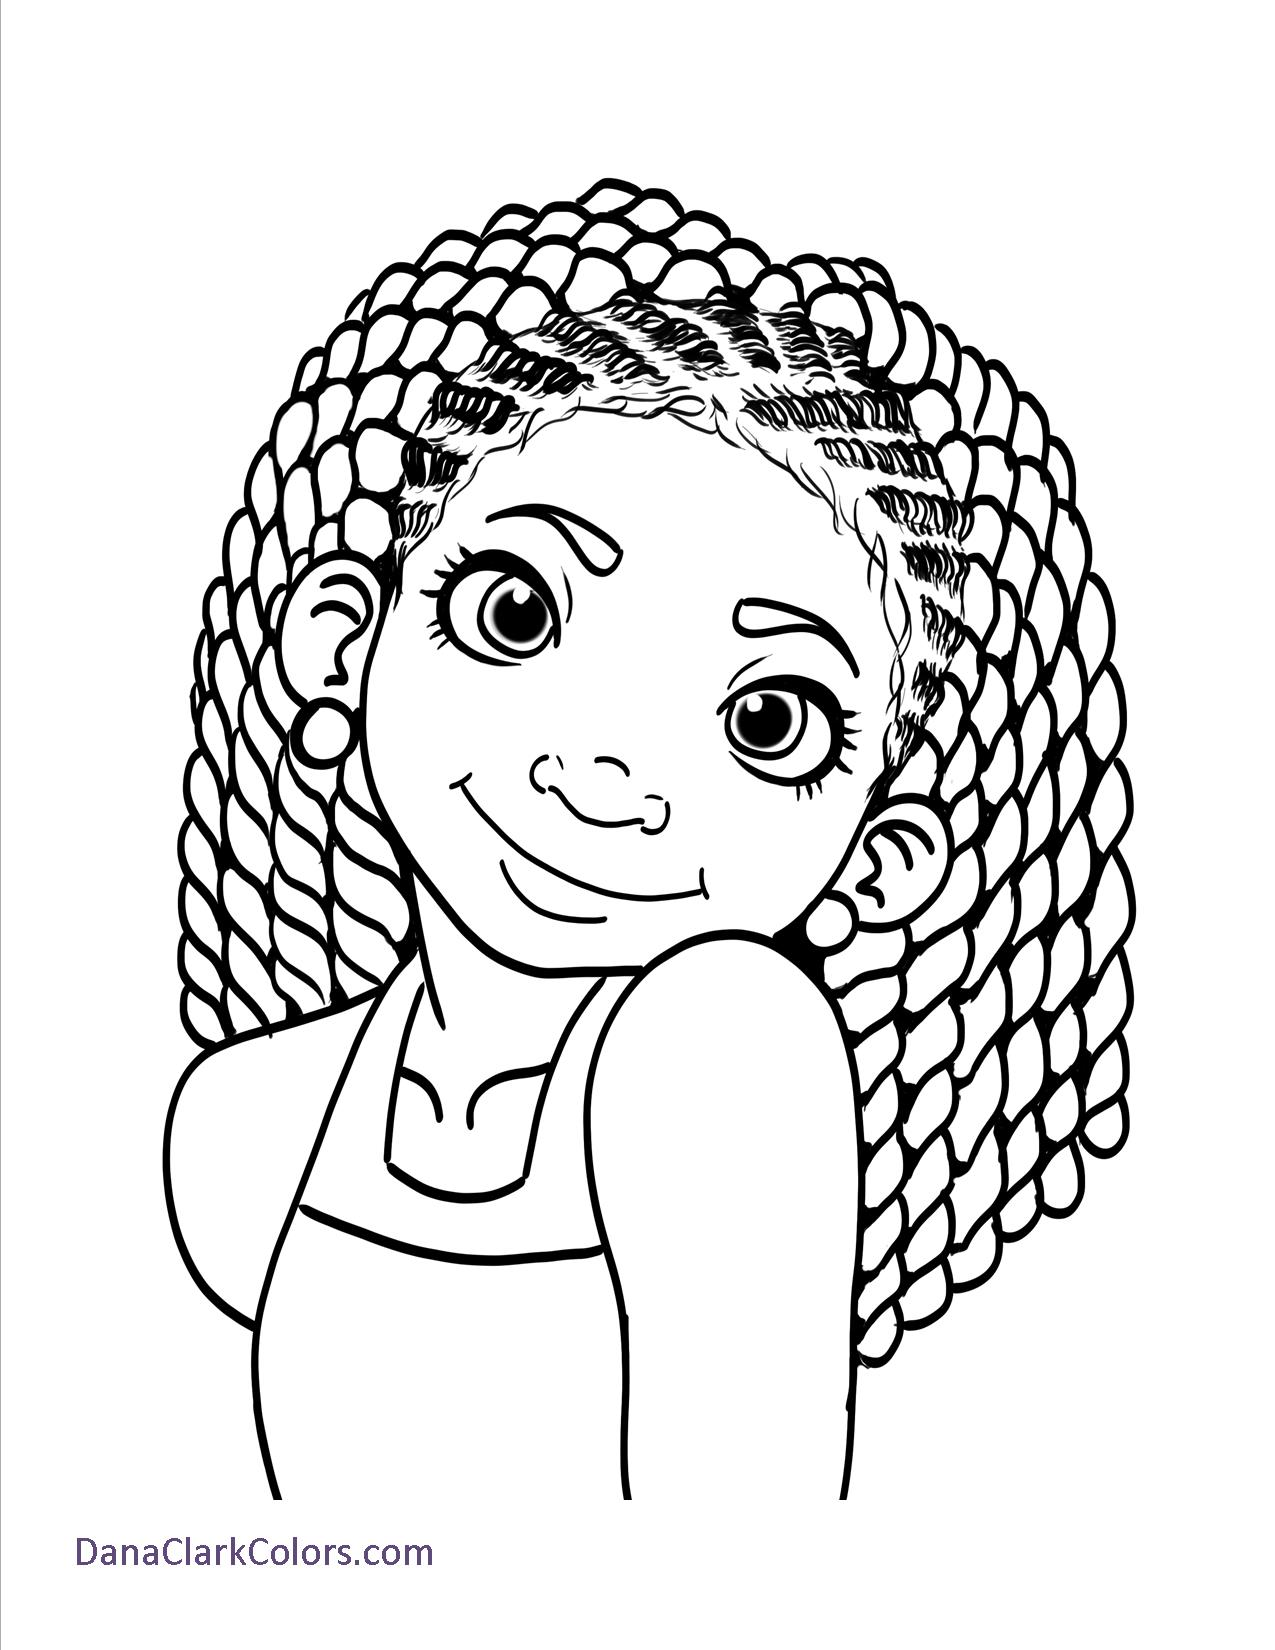 hair colouring pages girl with long hair drawing at getdrawings free download pages hair colouring